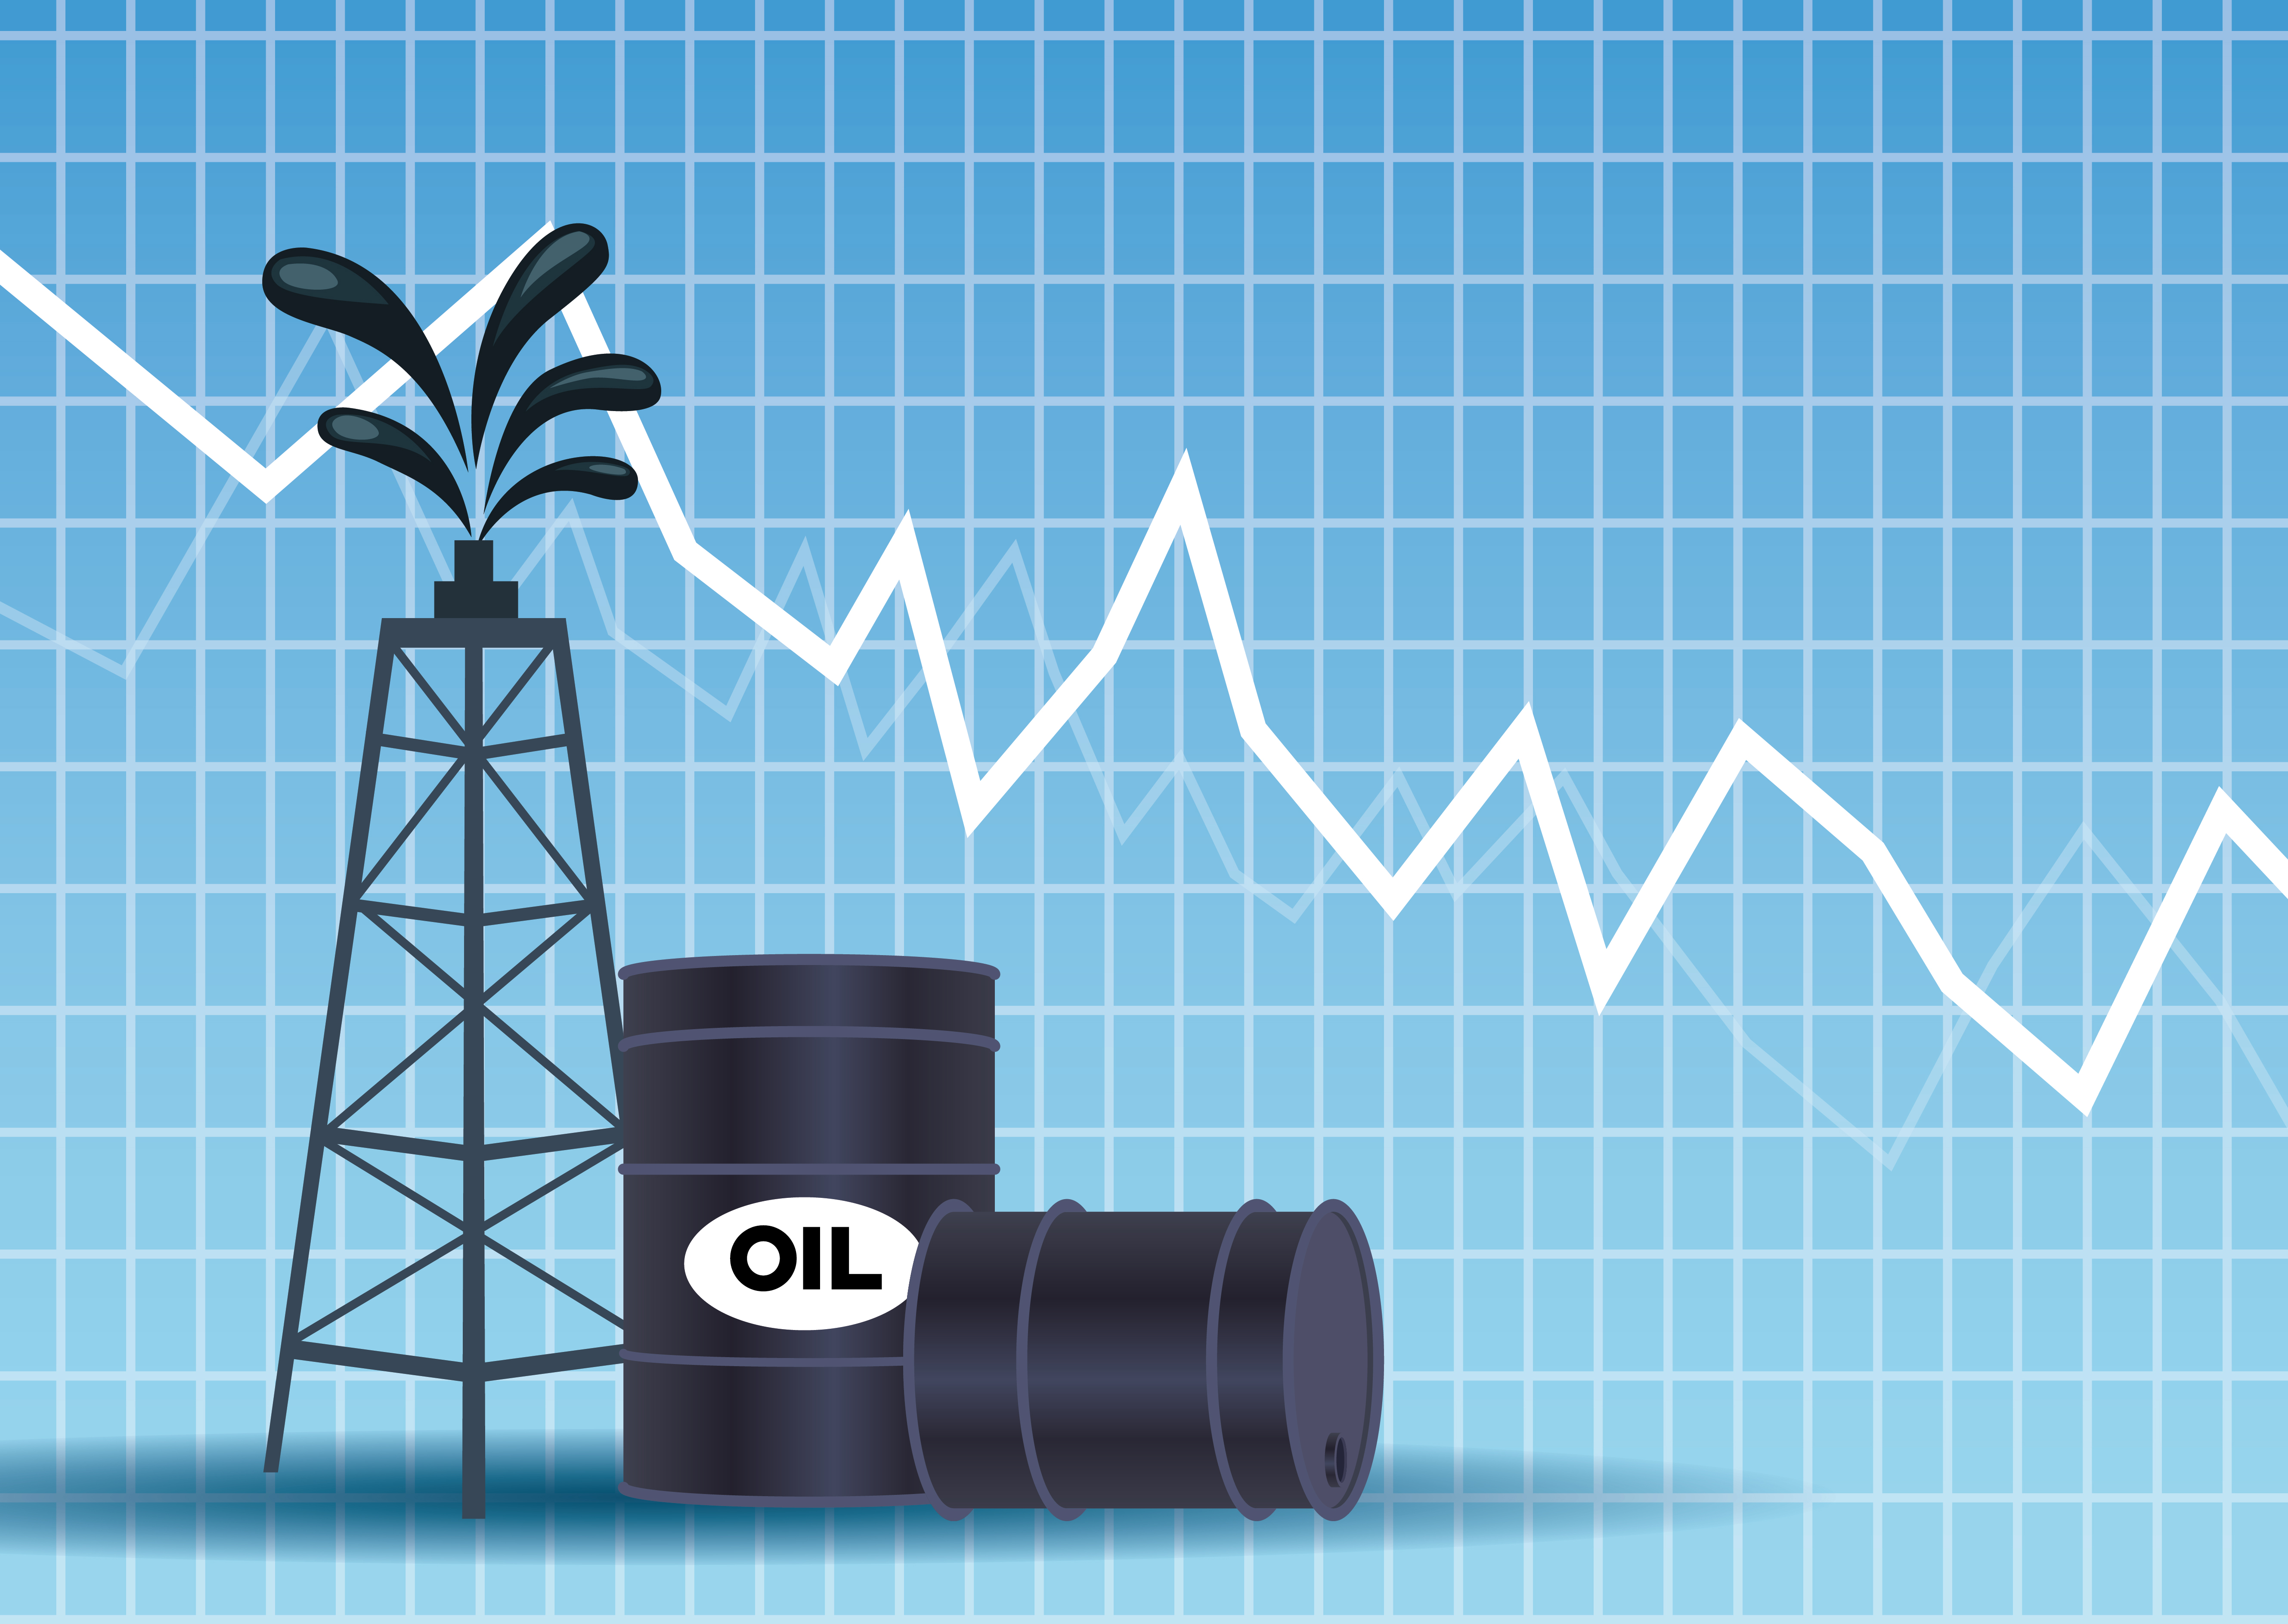 Oil price market with barrels and tower vector